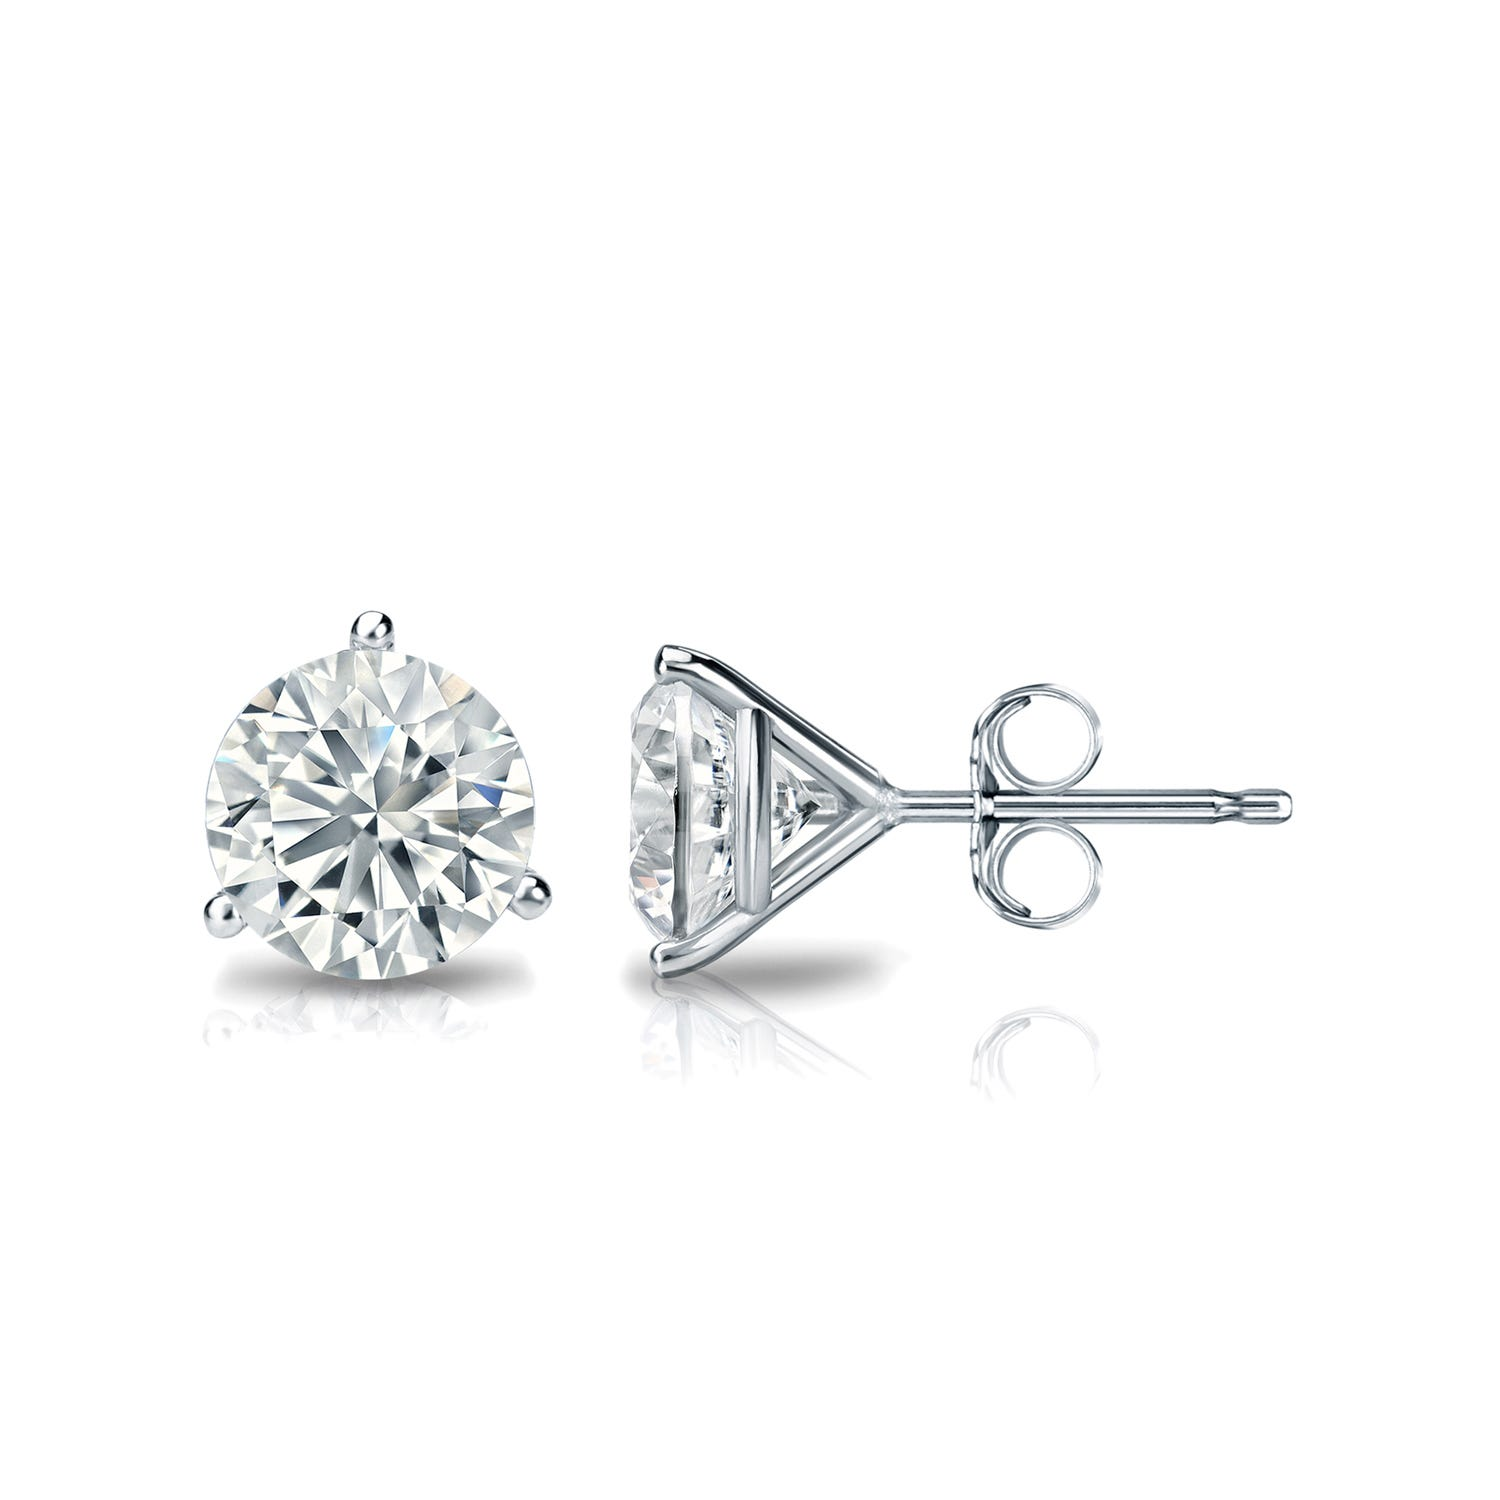 1 CTTW Round Diamond Solitaire Stud Earrings IJ I2 in 18K White Gold IGI Certified 3-Prong Setting